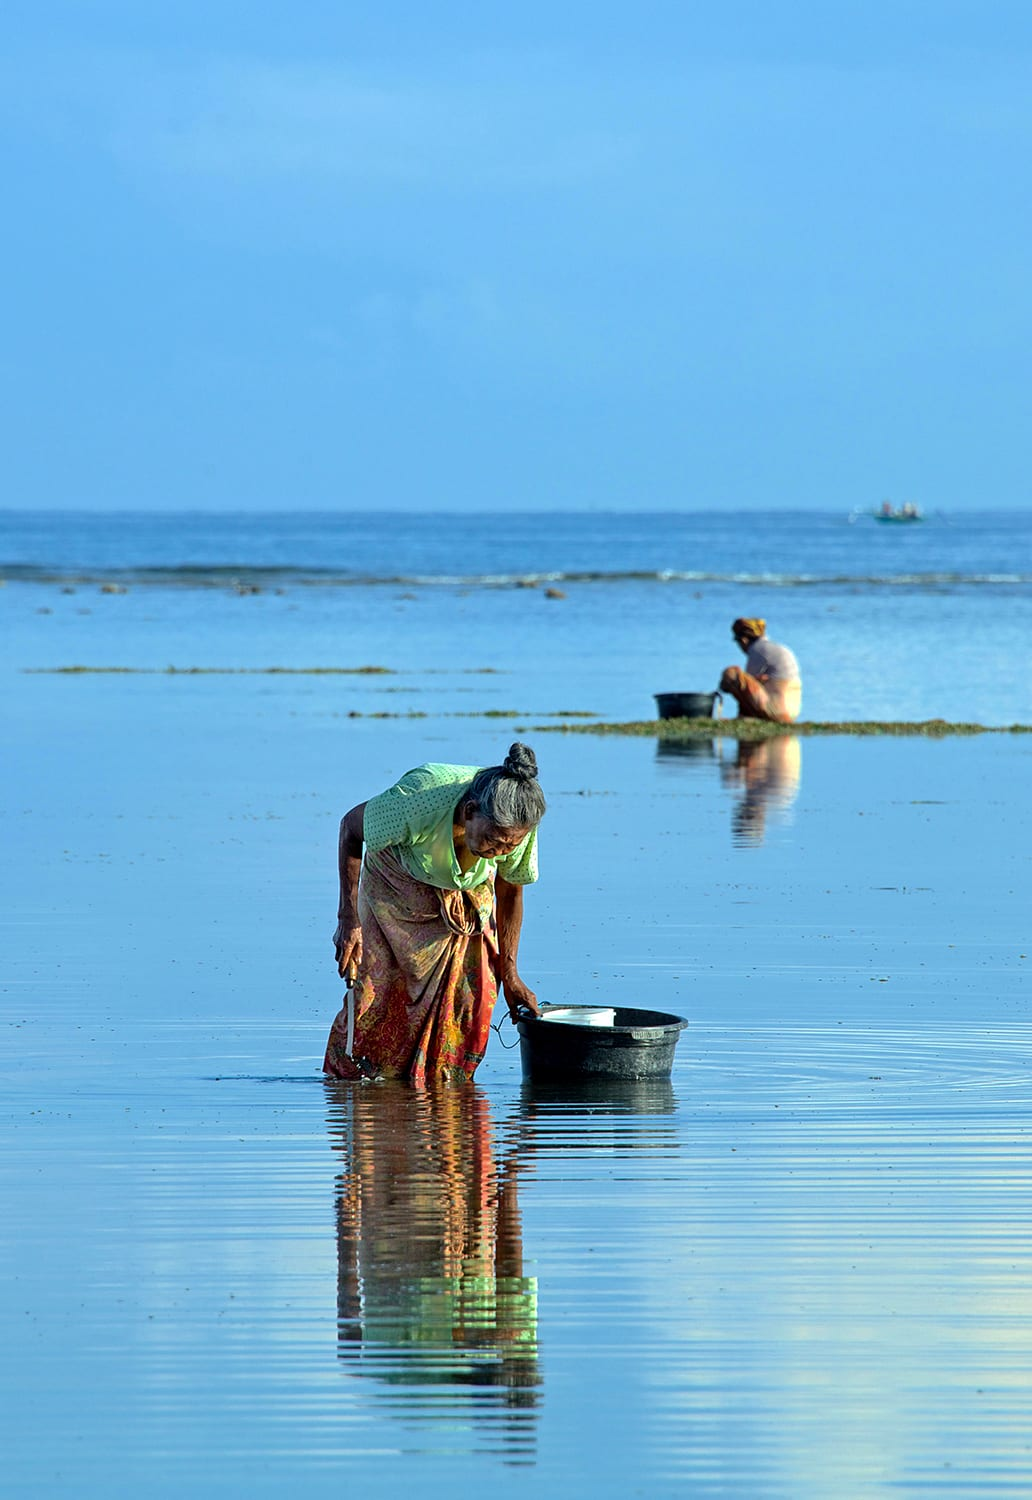 Women collecting shellfish in Lombok, Indonesia. (Photo by A. David South © Alamy)